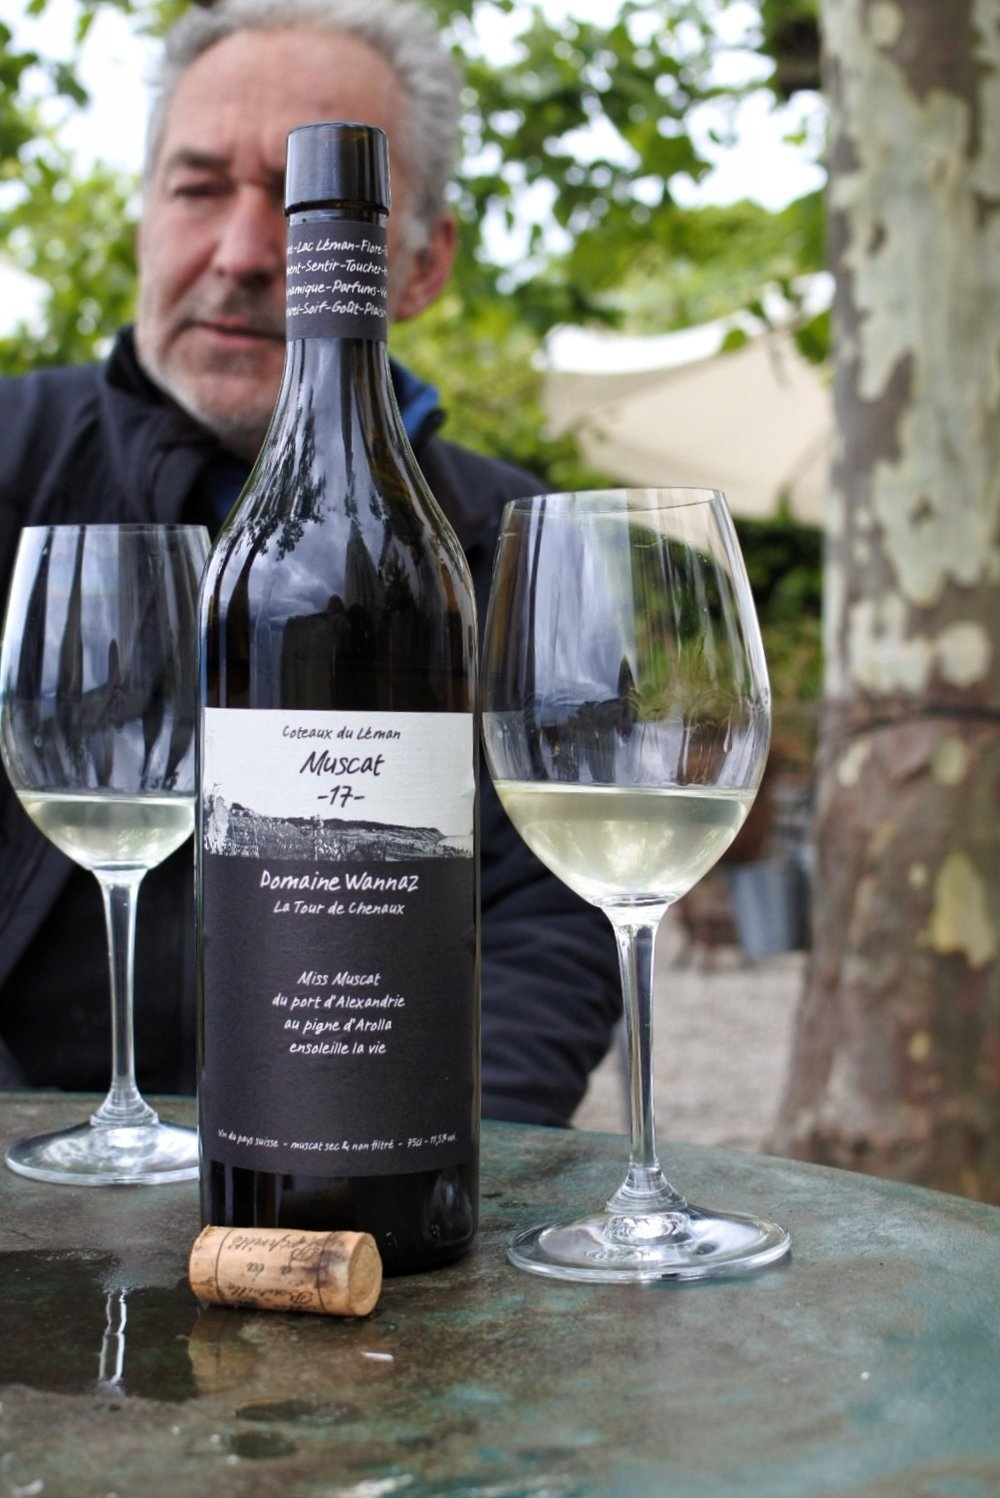 Gilles' take on Muscat will have you reconsider everything you thought you knew about that grape!